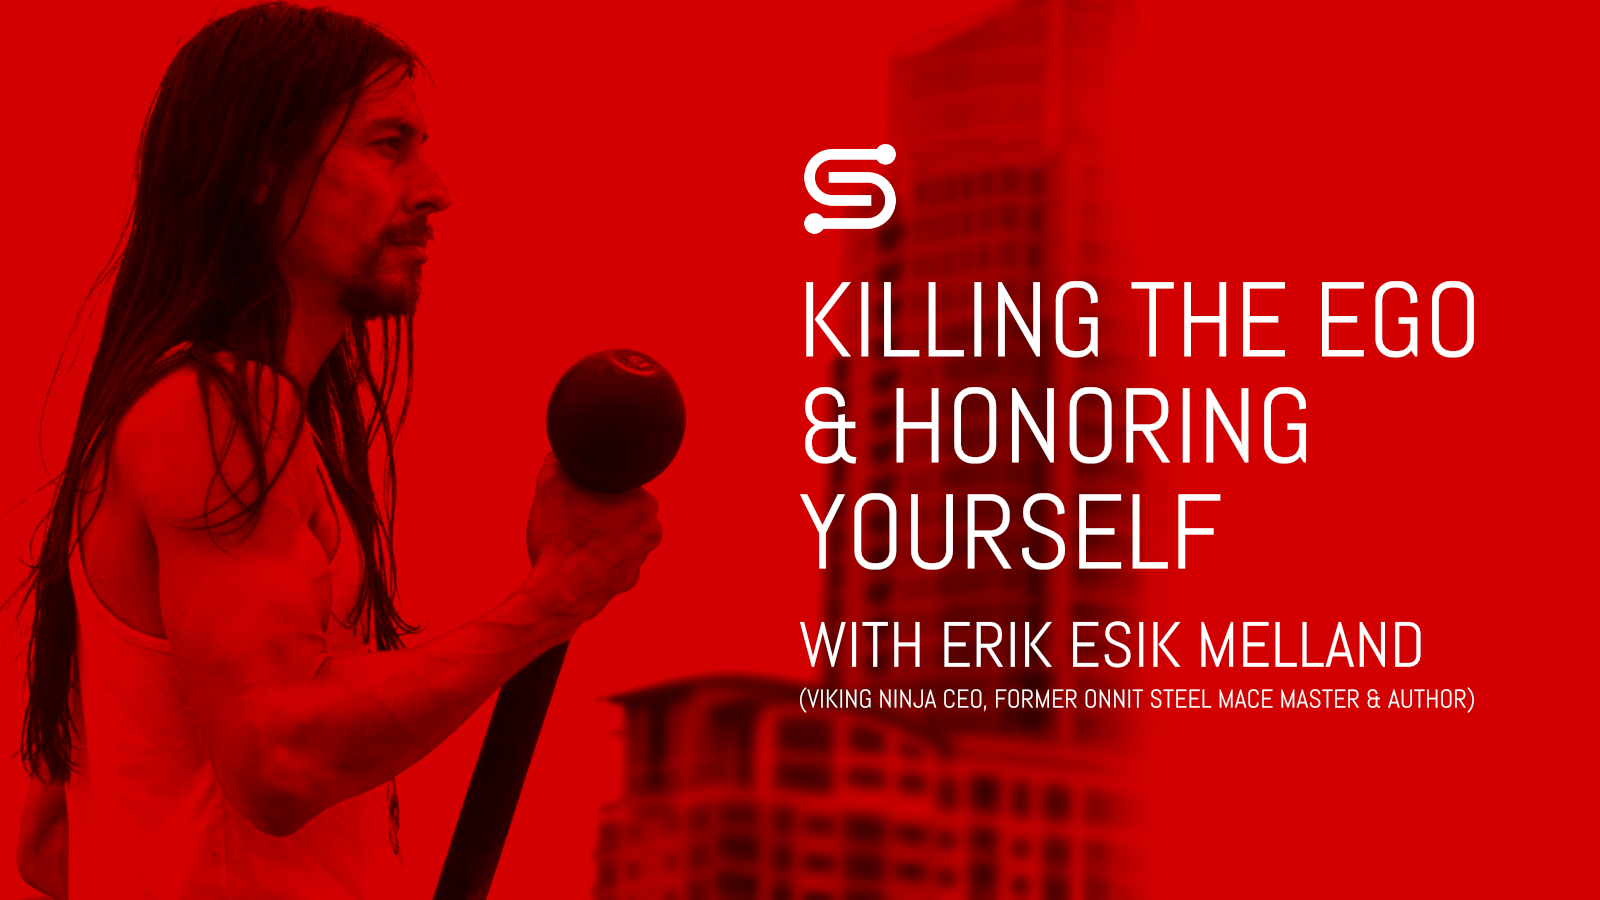 Killing the ego & honoring yourself with Erik Esik Melland